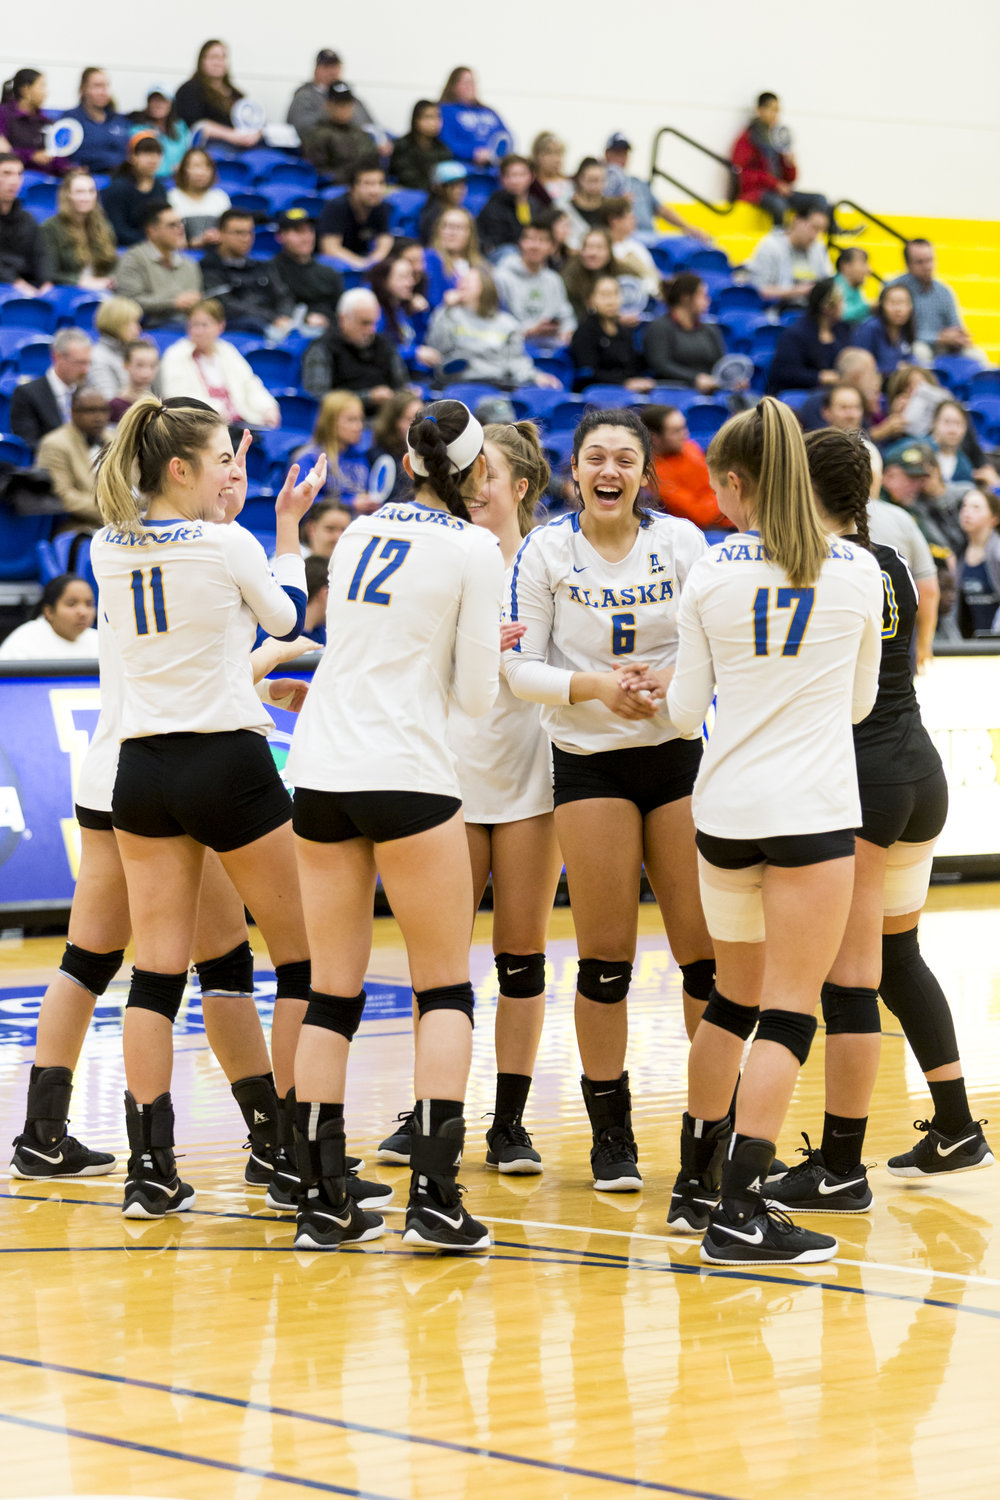 The 2018 UAF Women's Volleyball starting line up breaks into laughter after their a team cheer on the court before the start of the game on Tuesday, October 9th, 2018 UAF vs UAA.